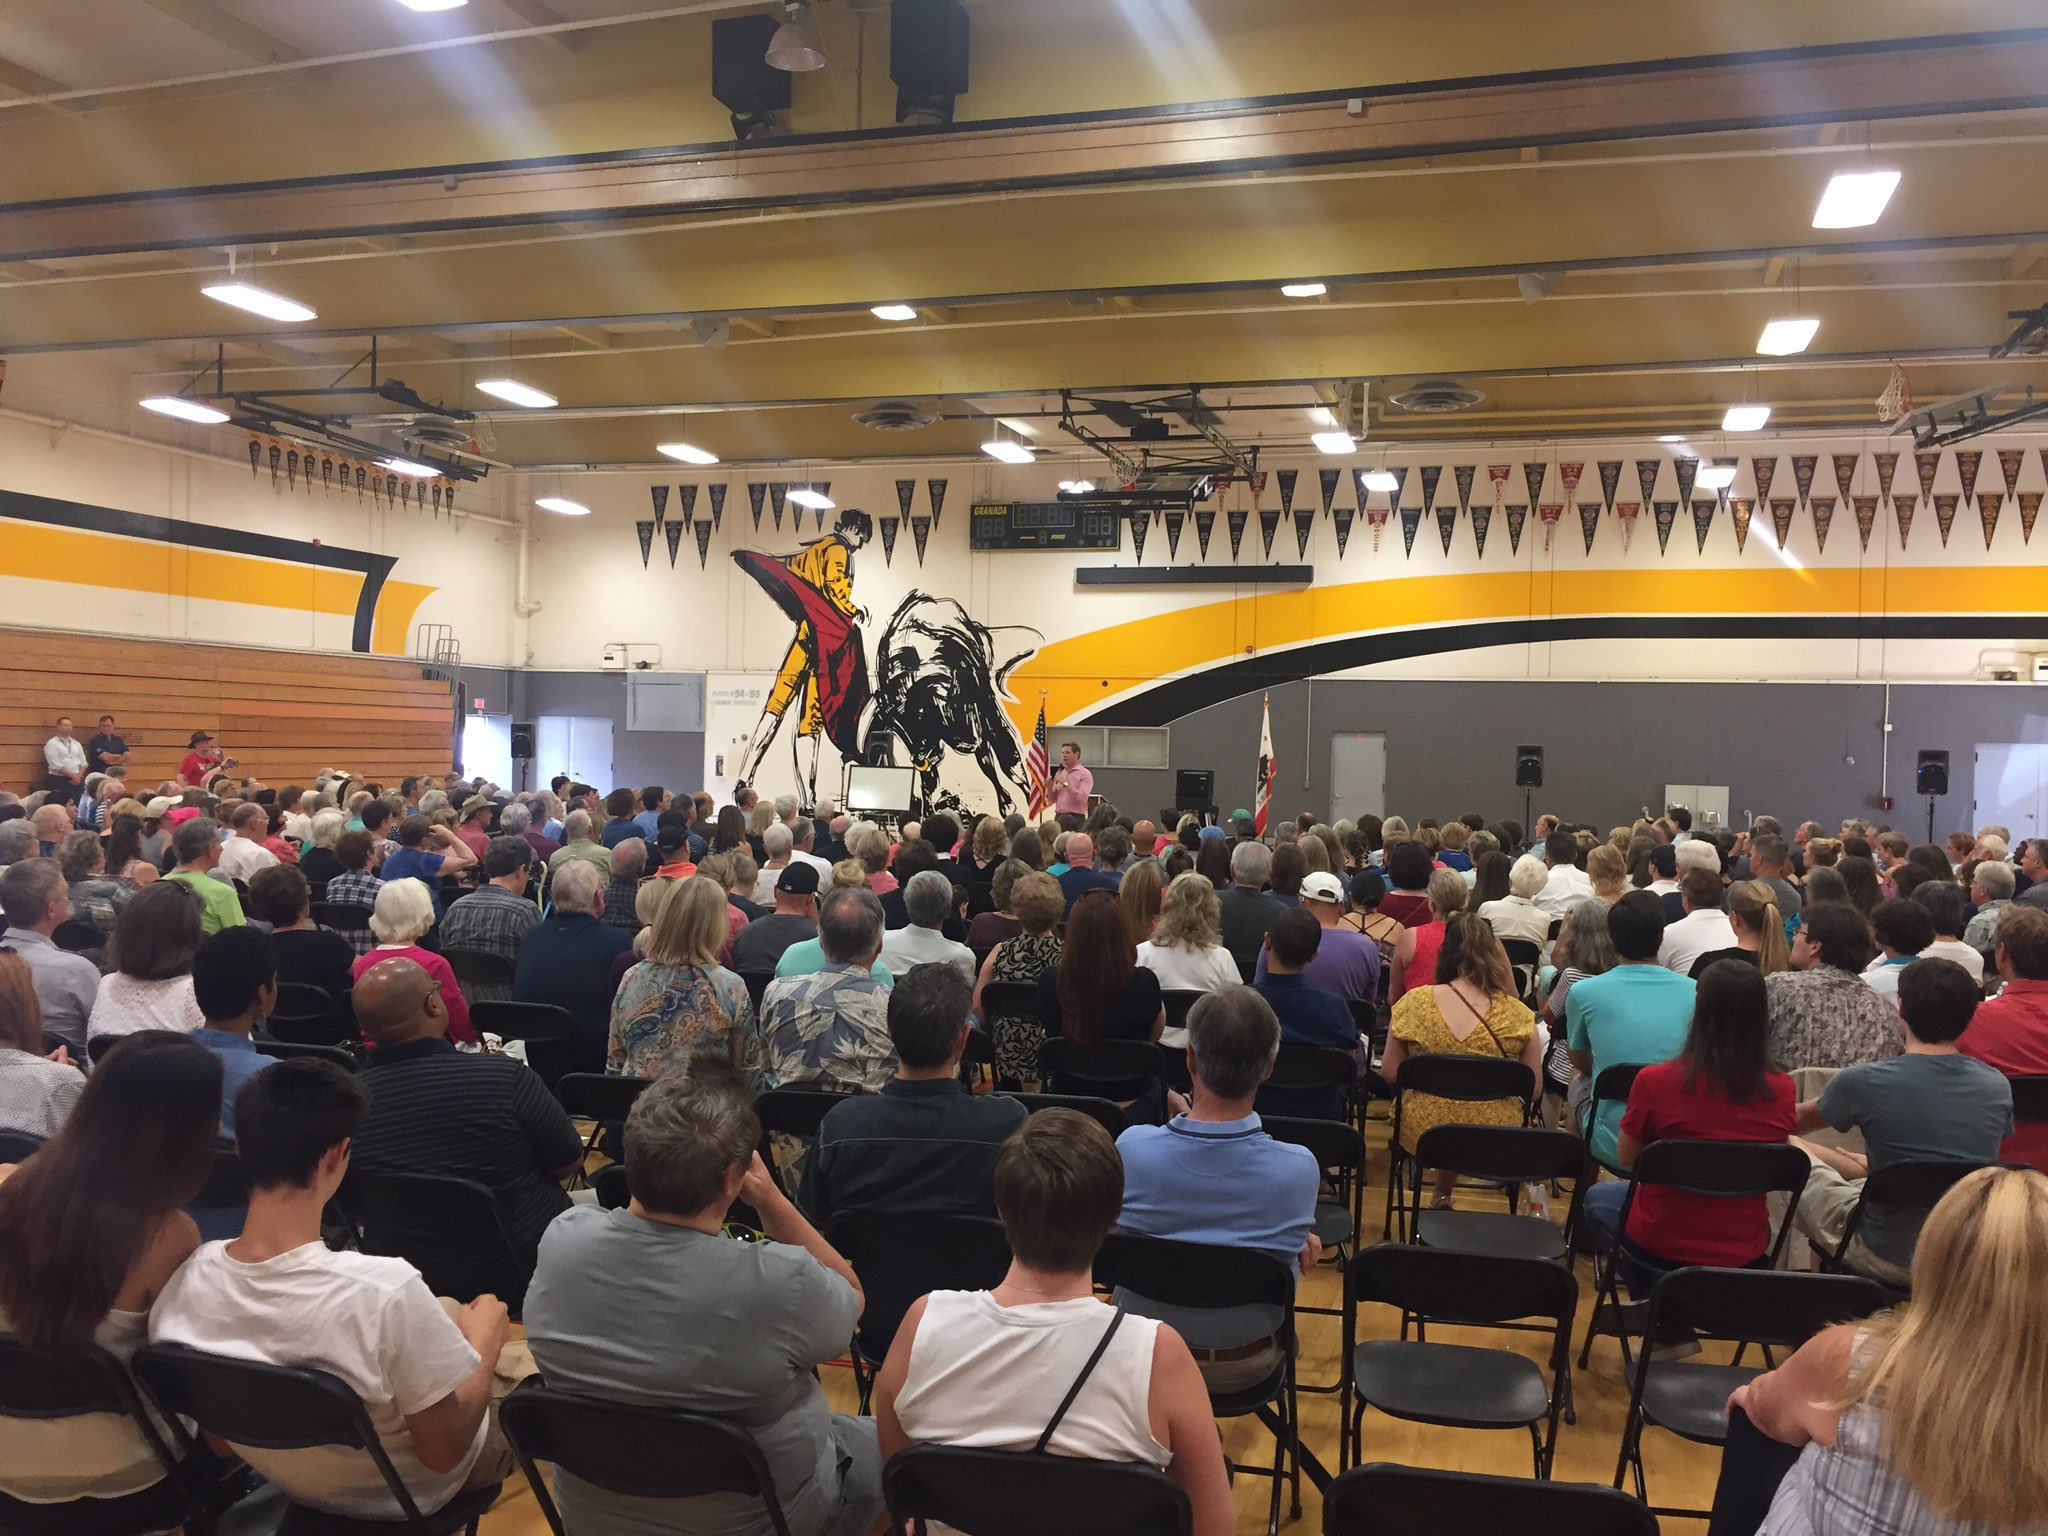 Great turnout at Granada High School in Livermore for the first of our two #CA15 town hall meetings today! https://t.co/fftocpKKiS